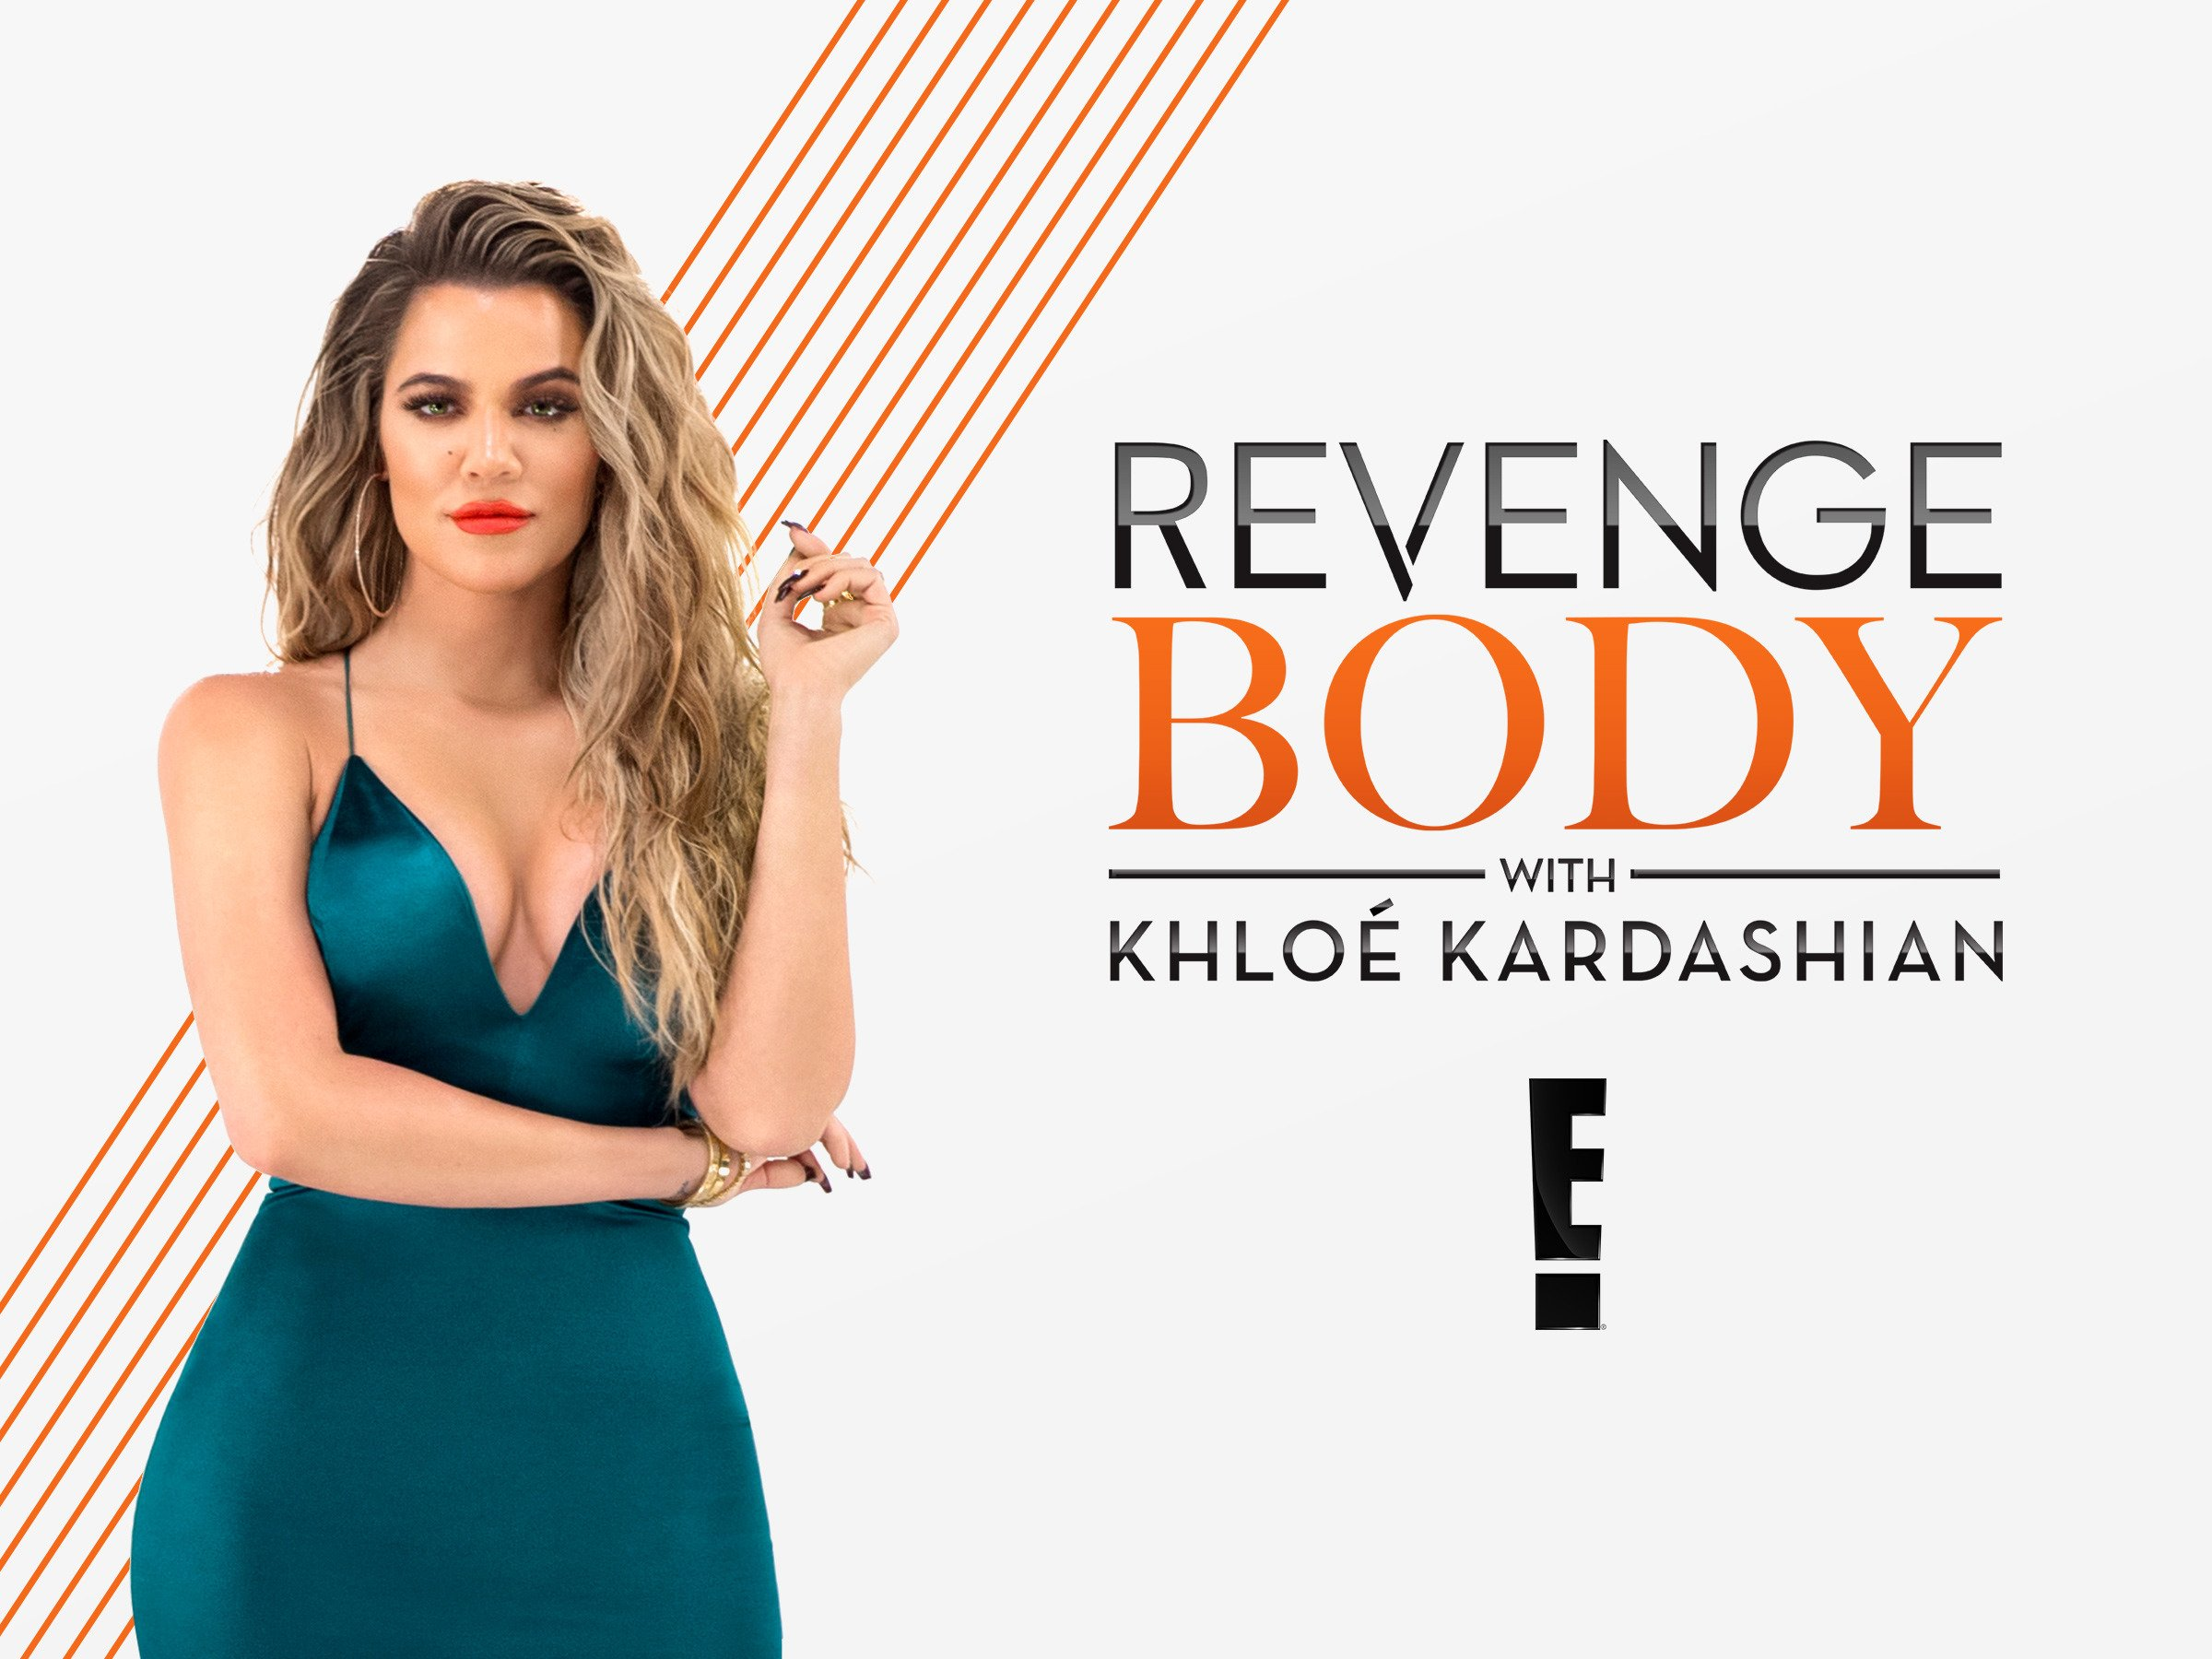 Khloe Kardashian show Revenge Body trainers give pep talk on positivity